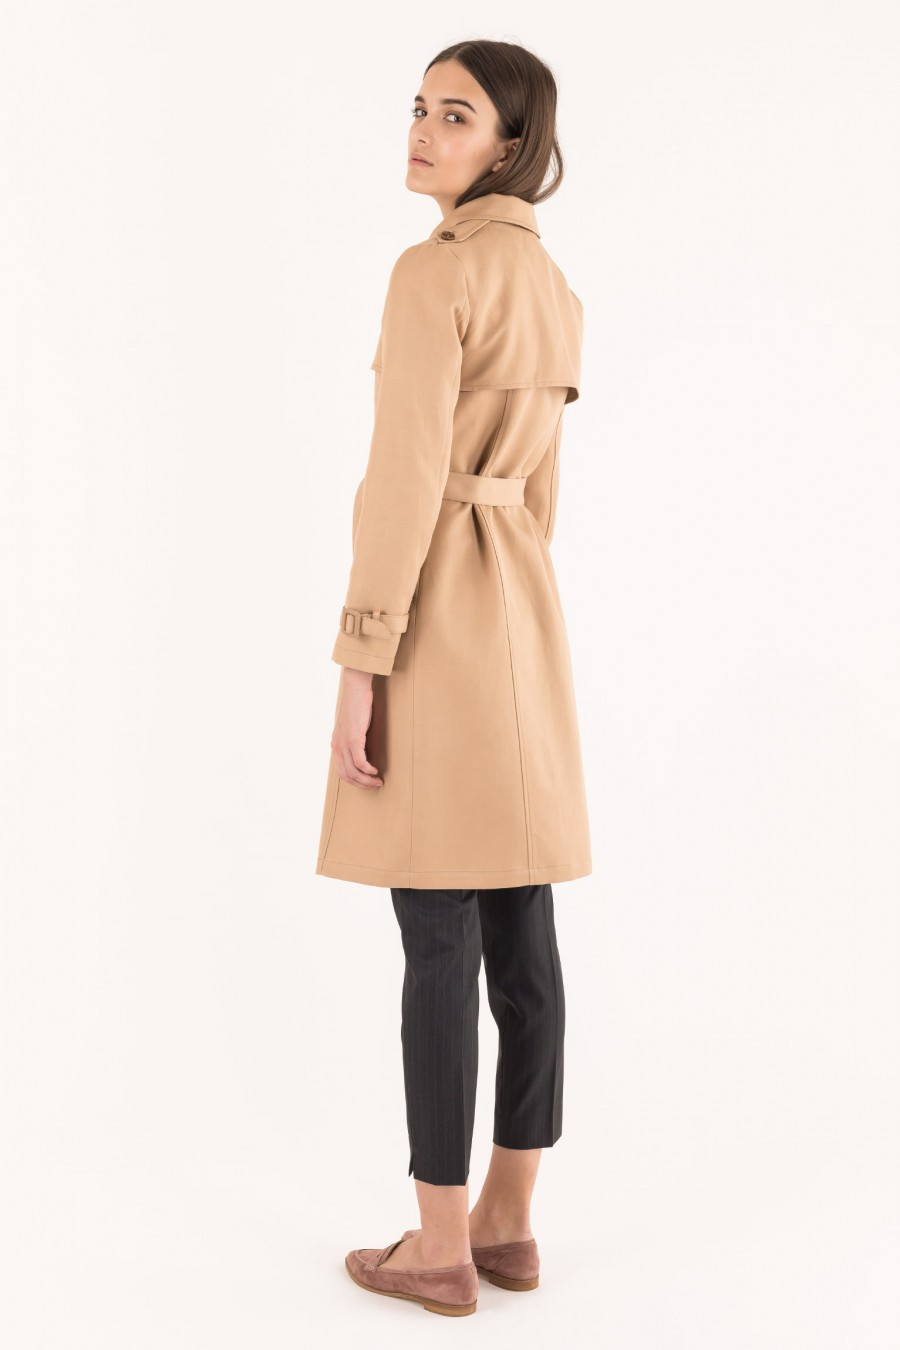 Casual beige coat